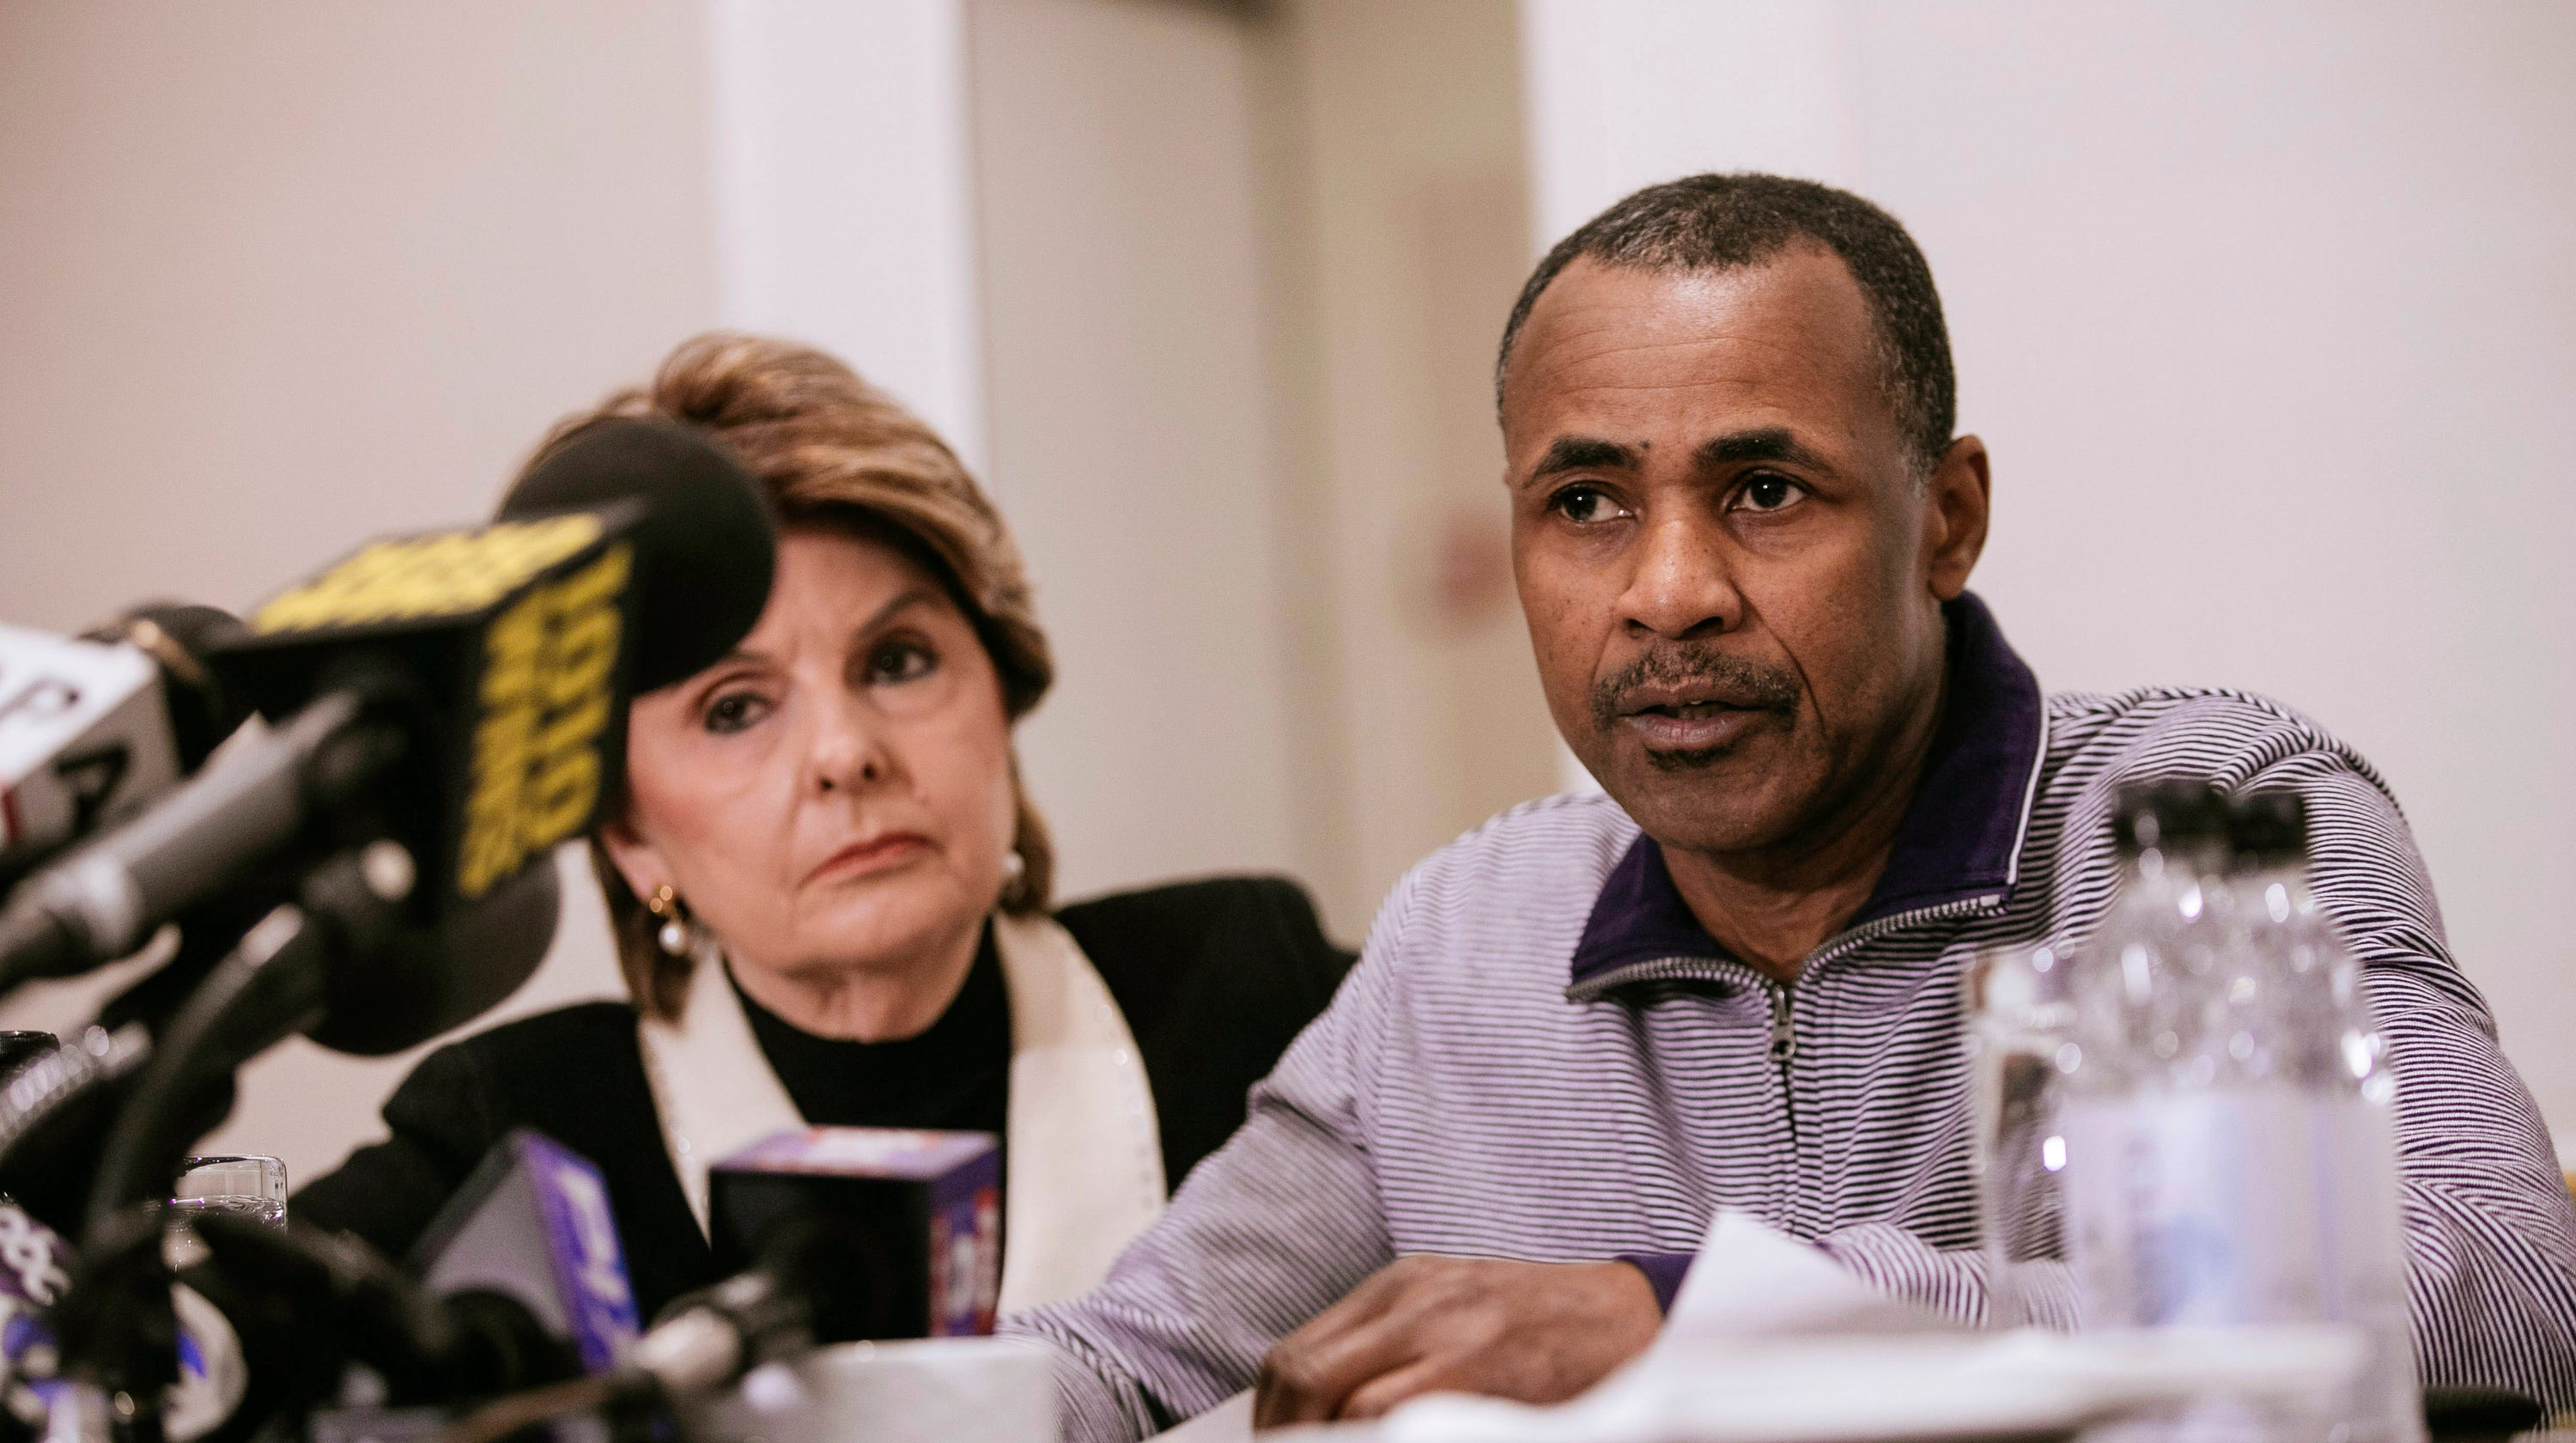 R  Kelly: Gloria Allred says she has what appears to be